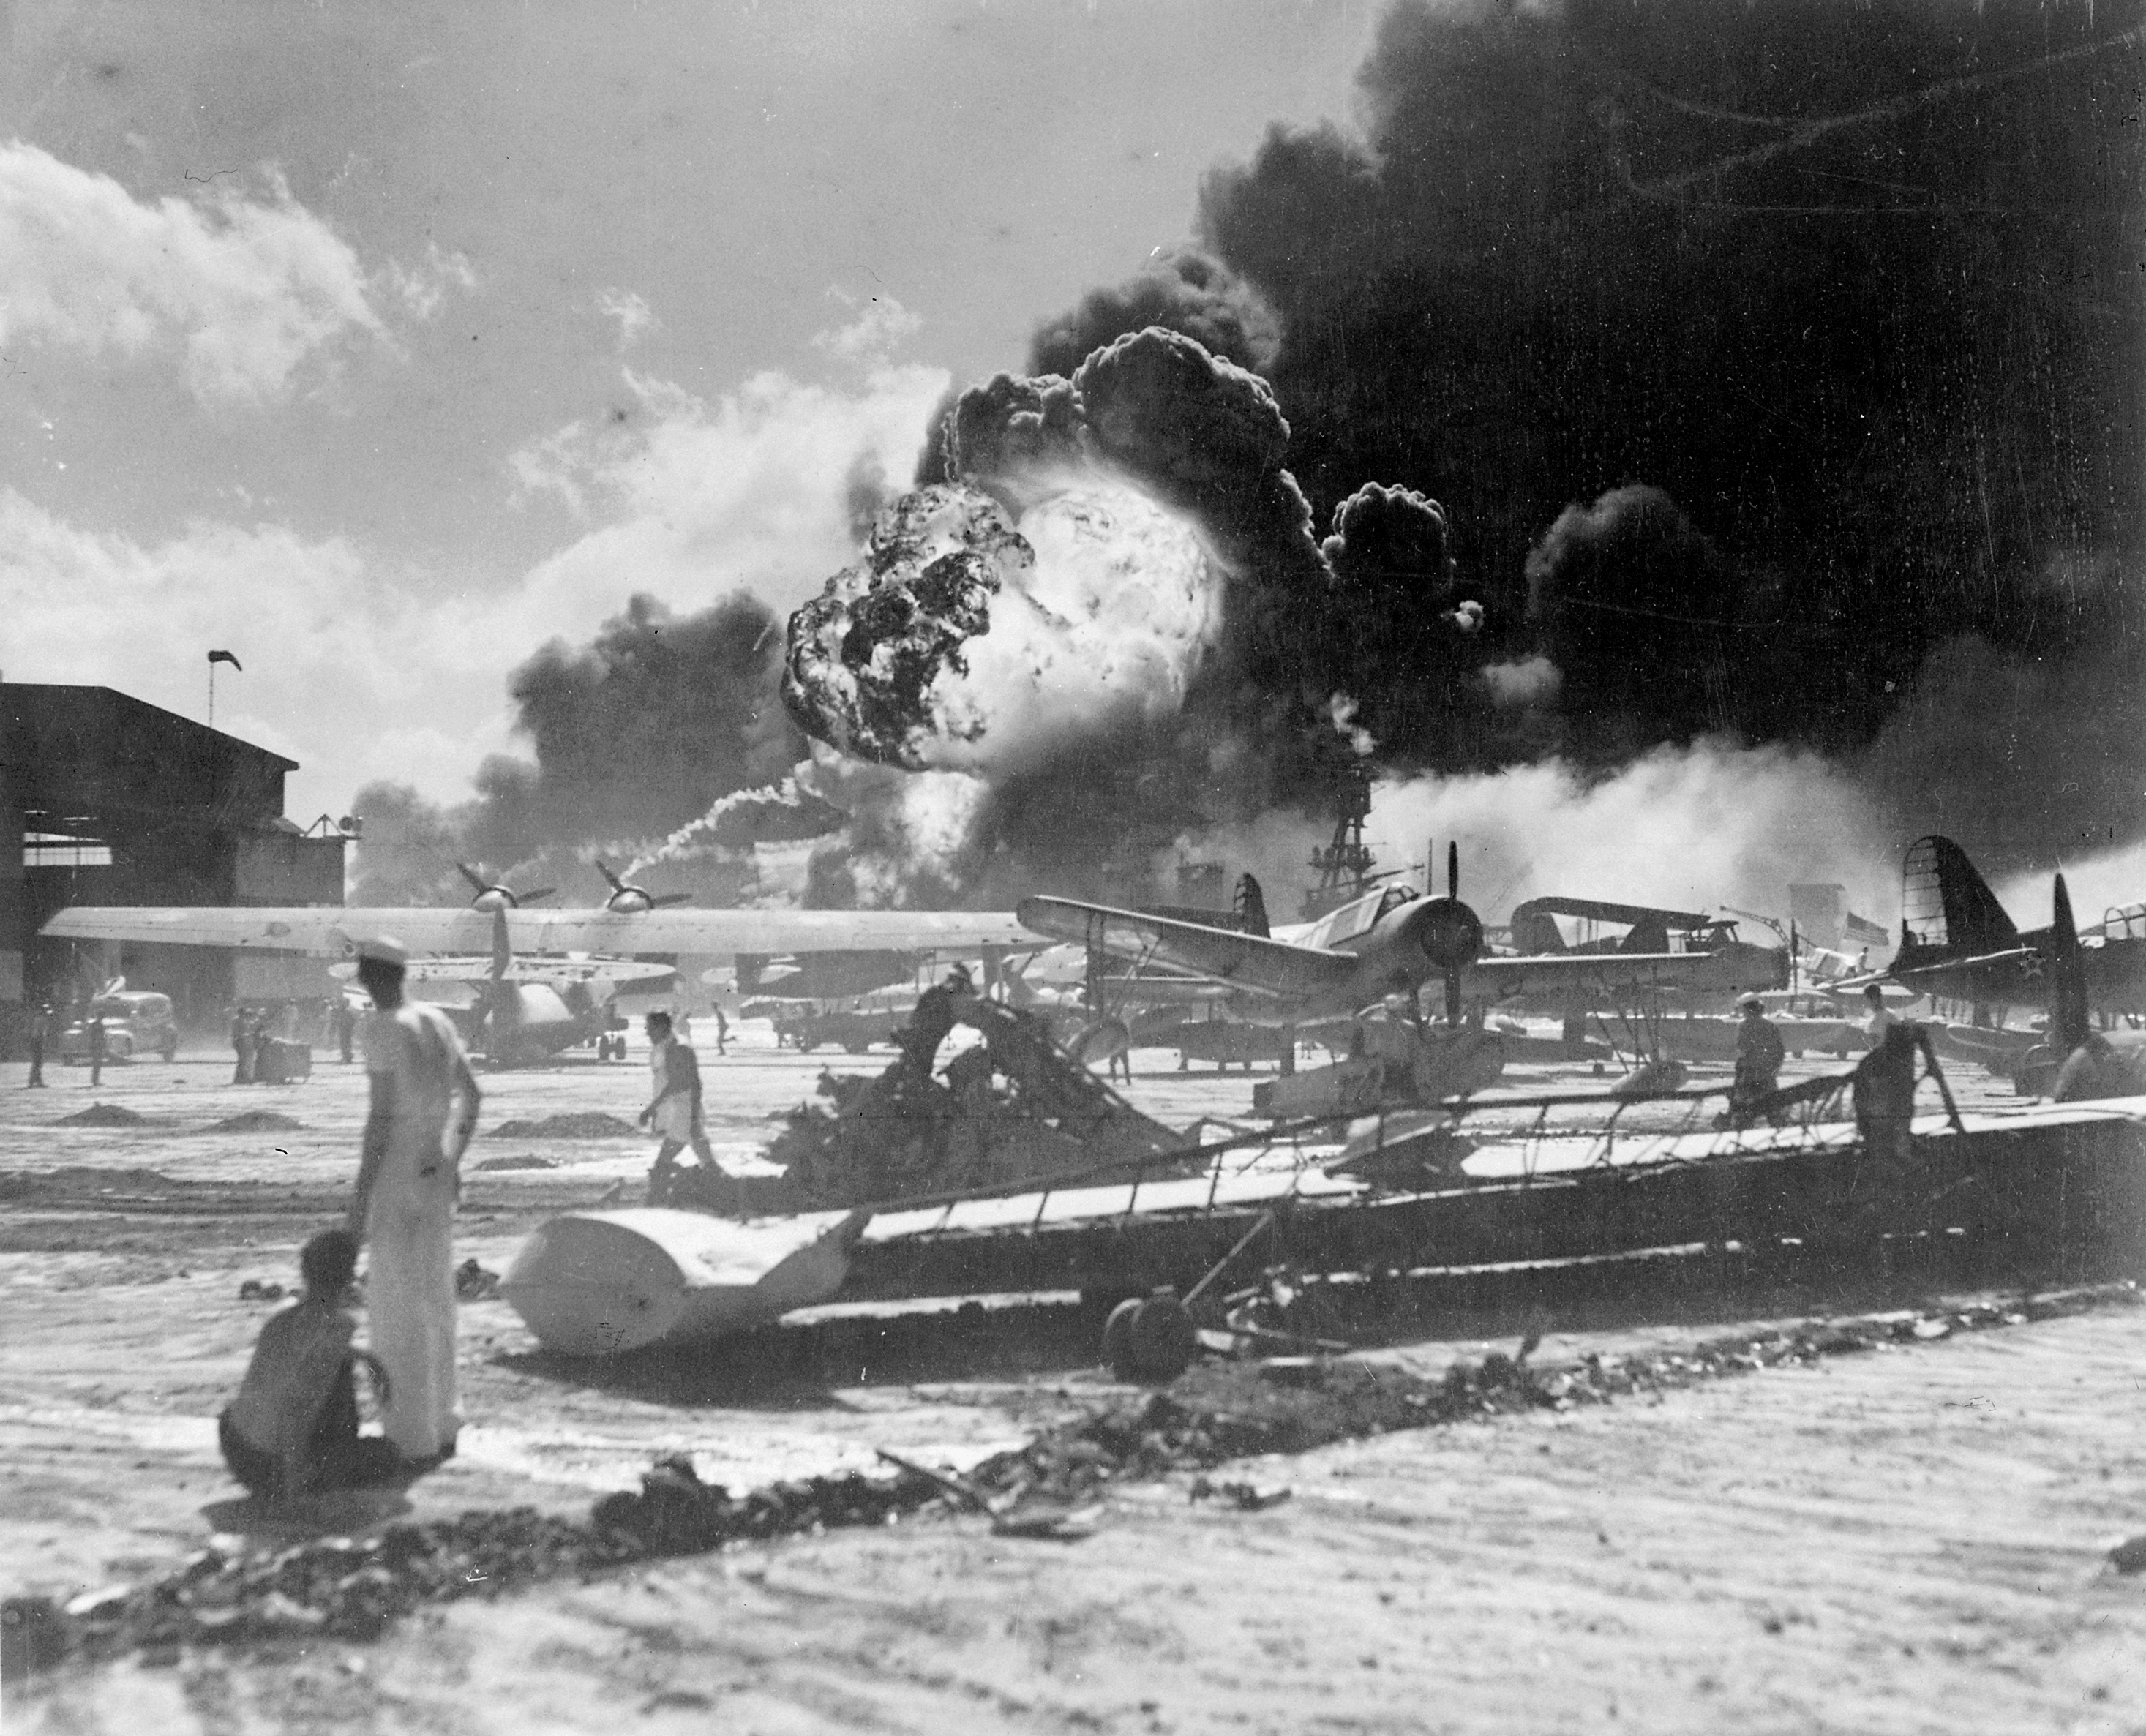 Sailors stand amid wrecked planes at the Ford Island seaplane base, watching as USS Shaw (DD-373) explodes in the center background, 7 December 1941. USS Nevada (BB-36) is also visible in the middle background, with her bow headed toward the left. Several planes are in the foreground, a consolidated PBY, Vought OS2Us and Curtiss SOCs. The wrecked wing in the foreground is from a PBY. Official U.S. Navy photograph 80-G-19948, now in the collections of the National Archives.